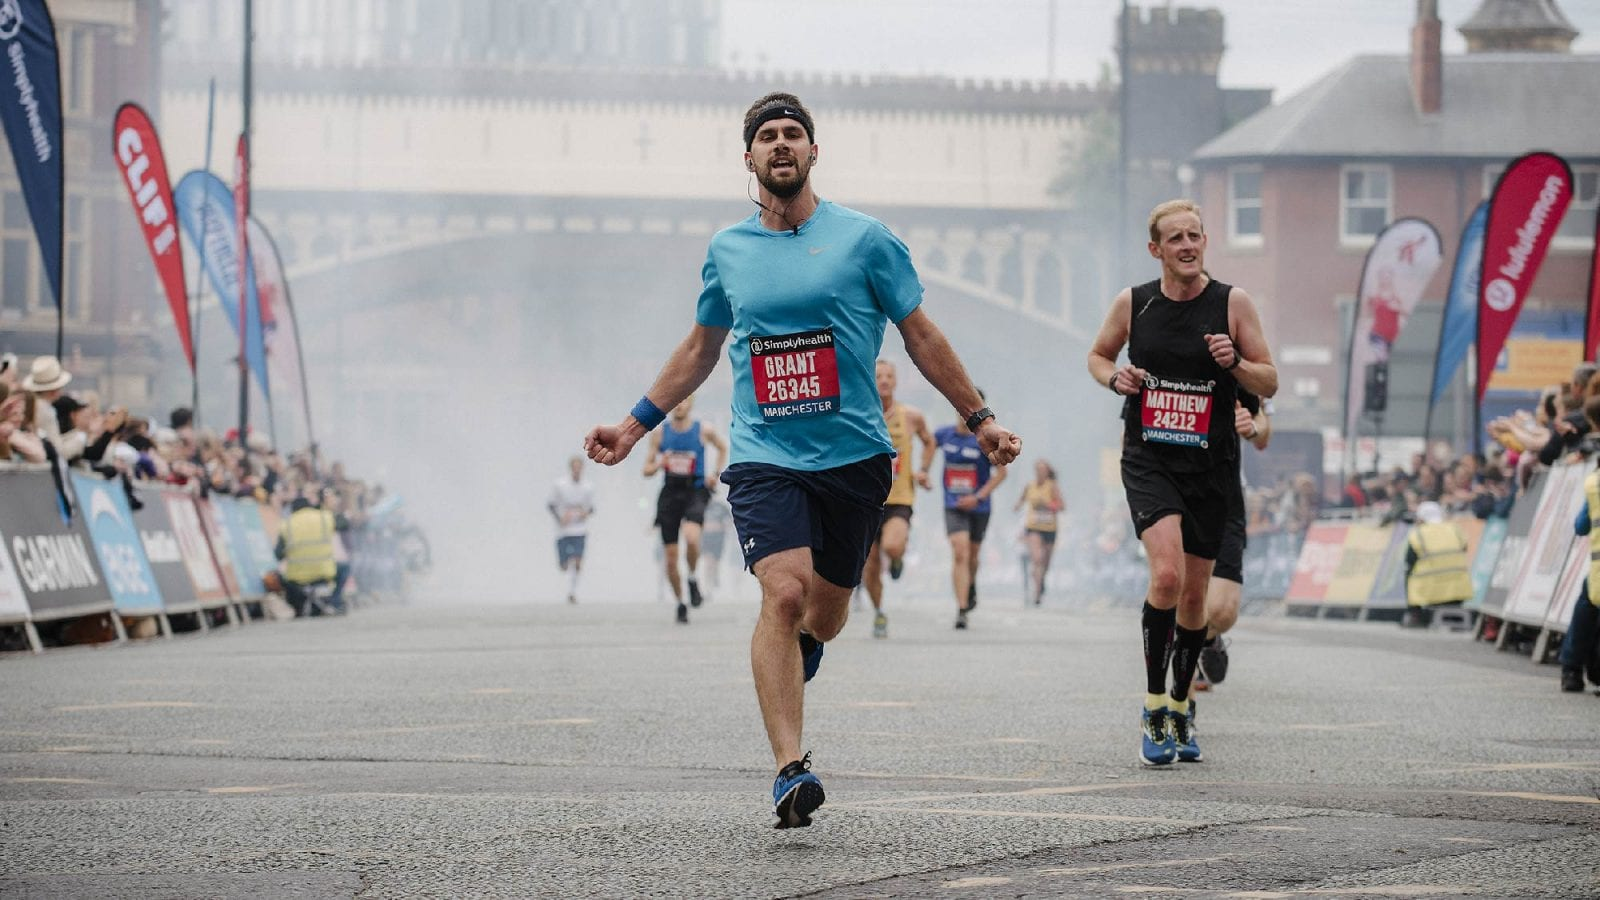 'Special' day ahead as city prepares for first Great Manchester Run since 2019, The Manc